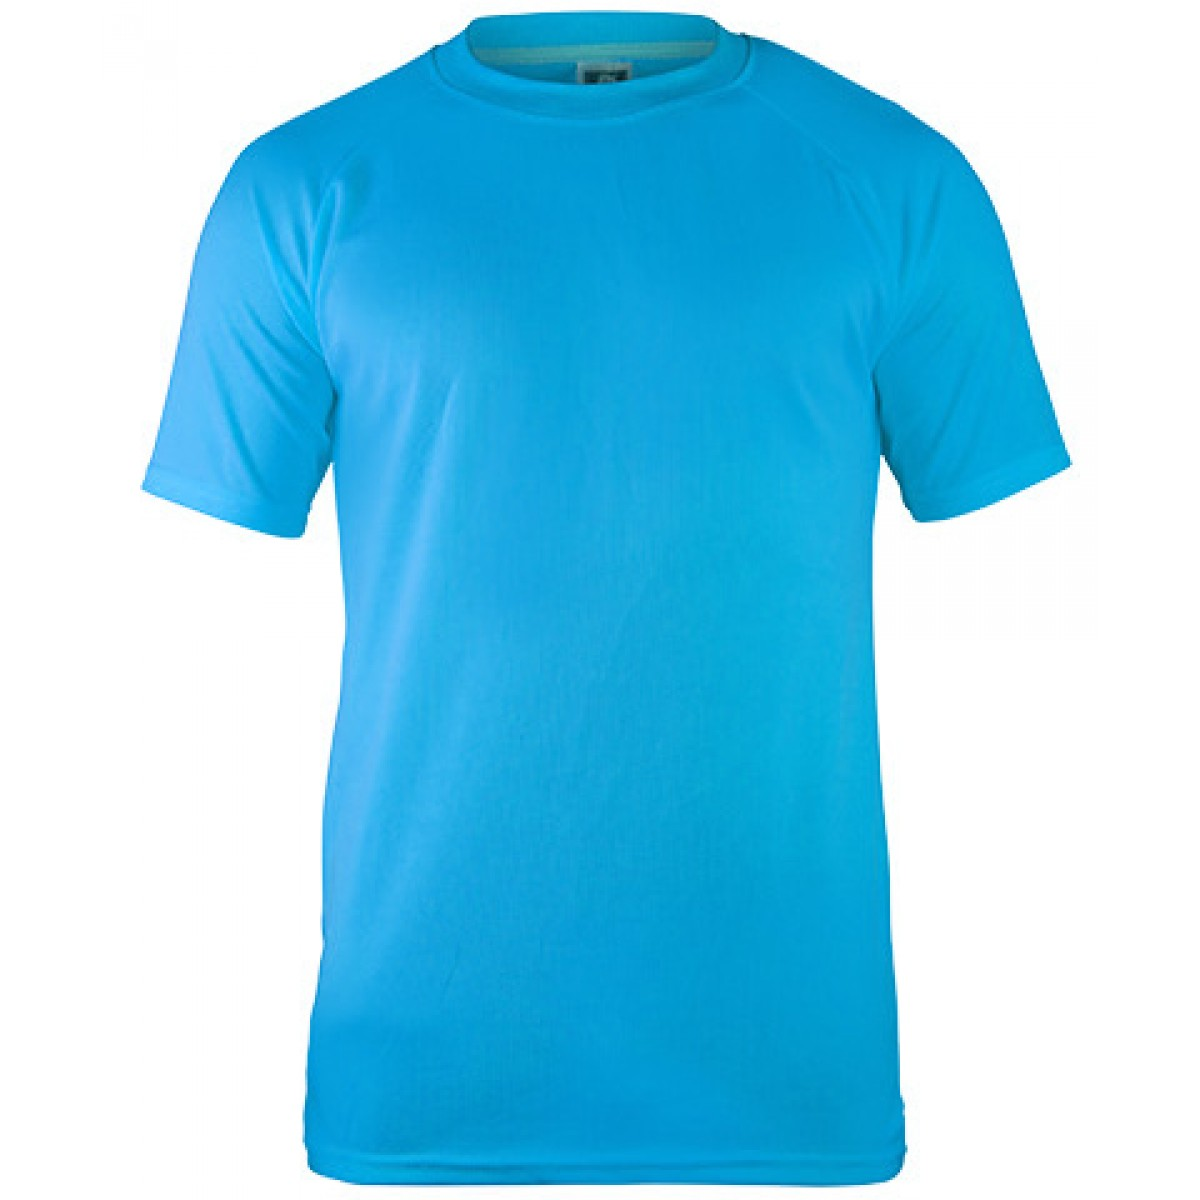 Short Sleeves Mesh Performance T-shirt-Blue-XL